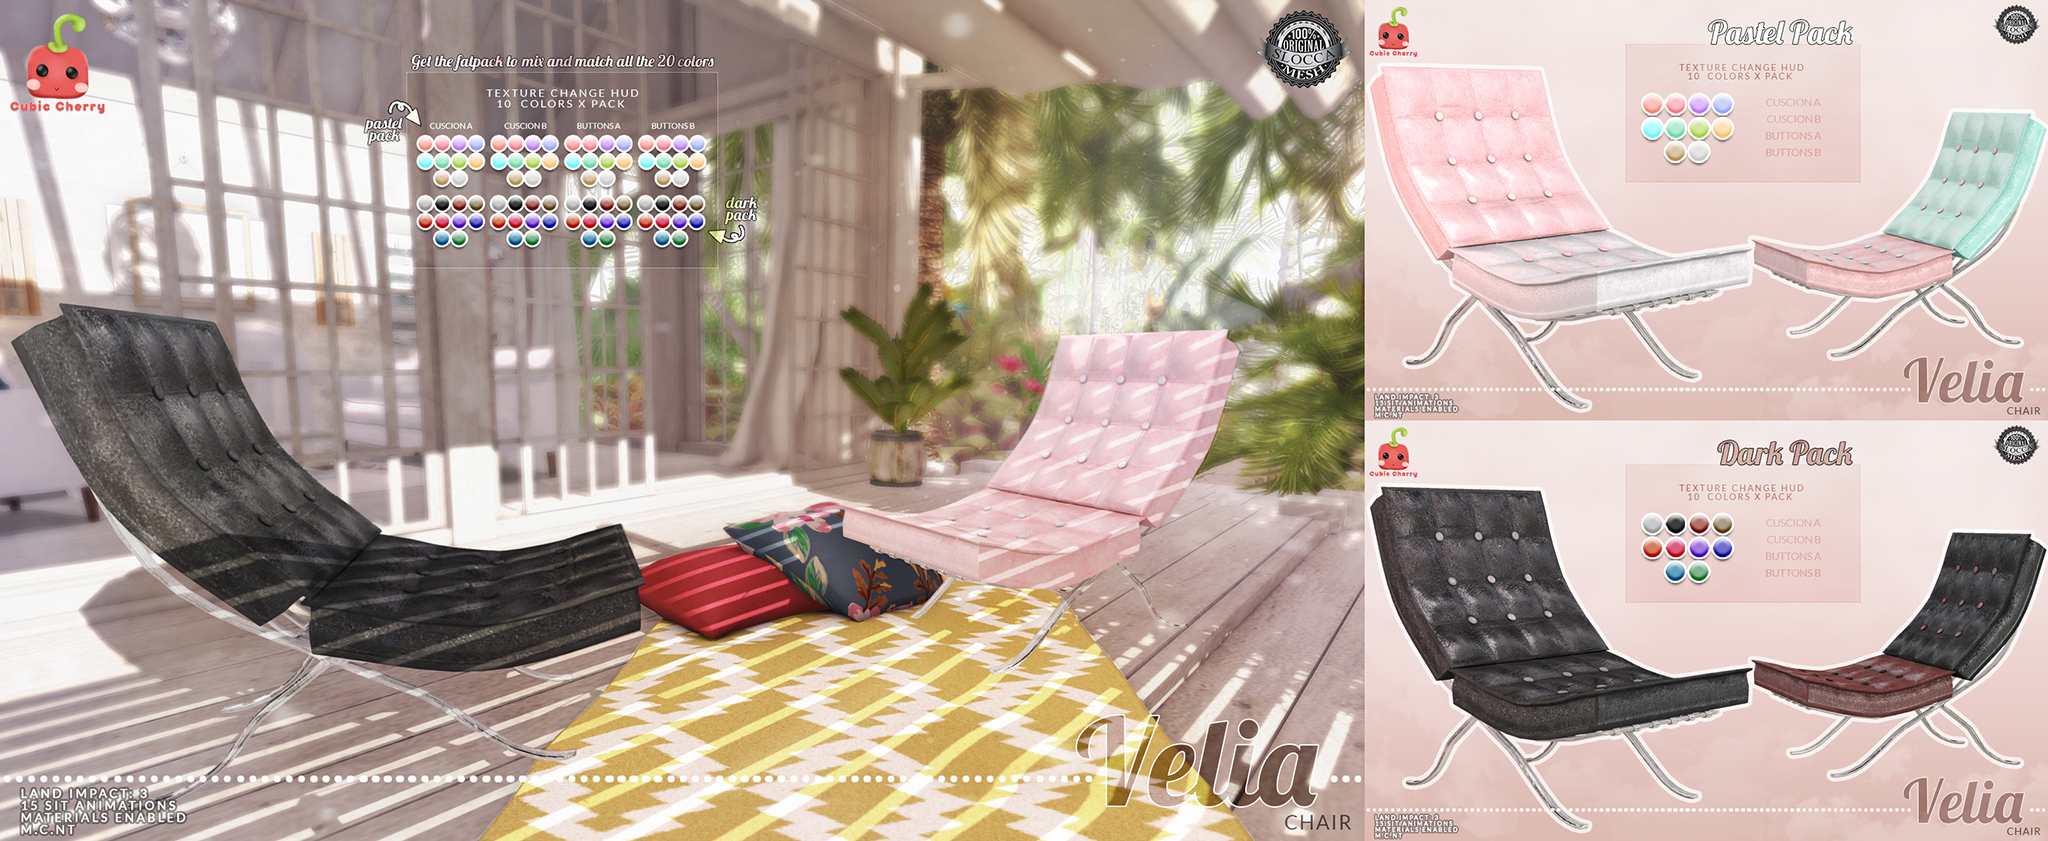 Velia chair cubic cherry FULL ad.jpg